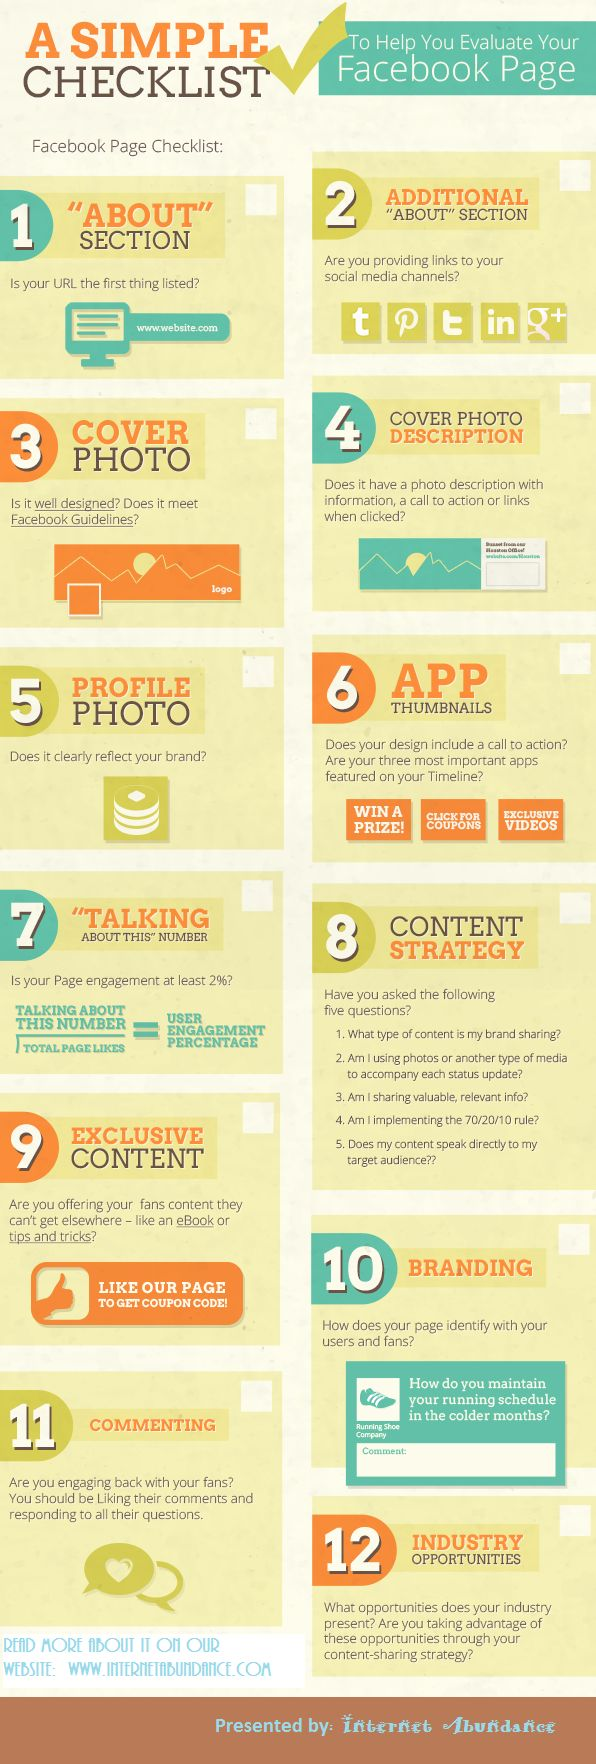 A Simple Checklist To Help You Evaluate Your Facebook Page #infographic